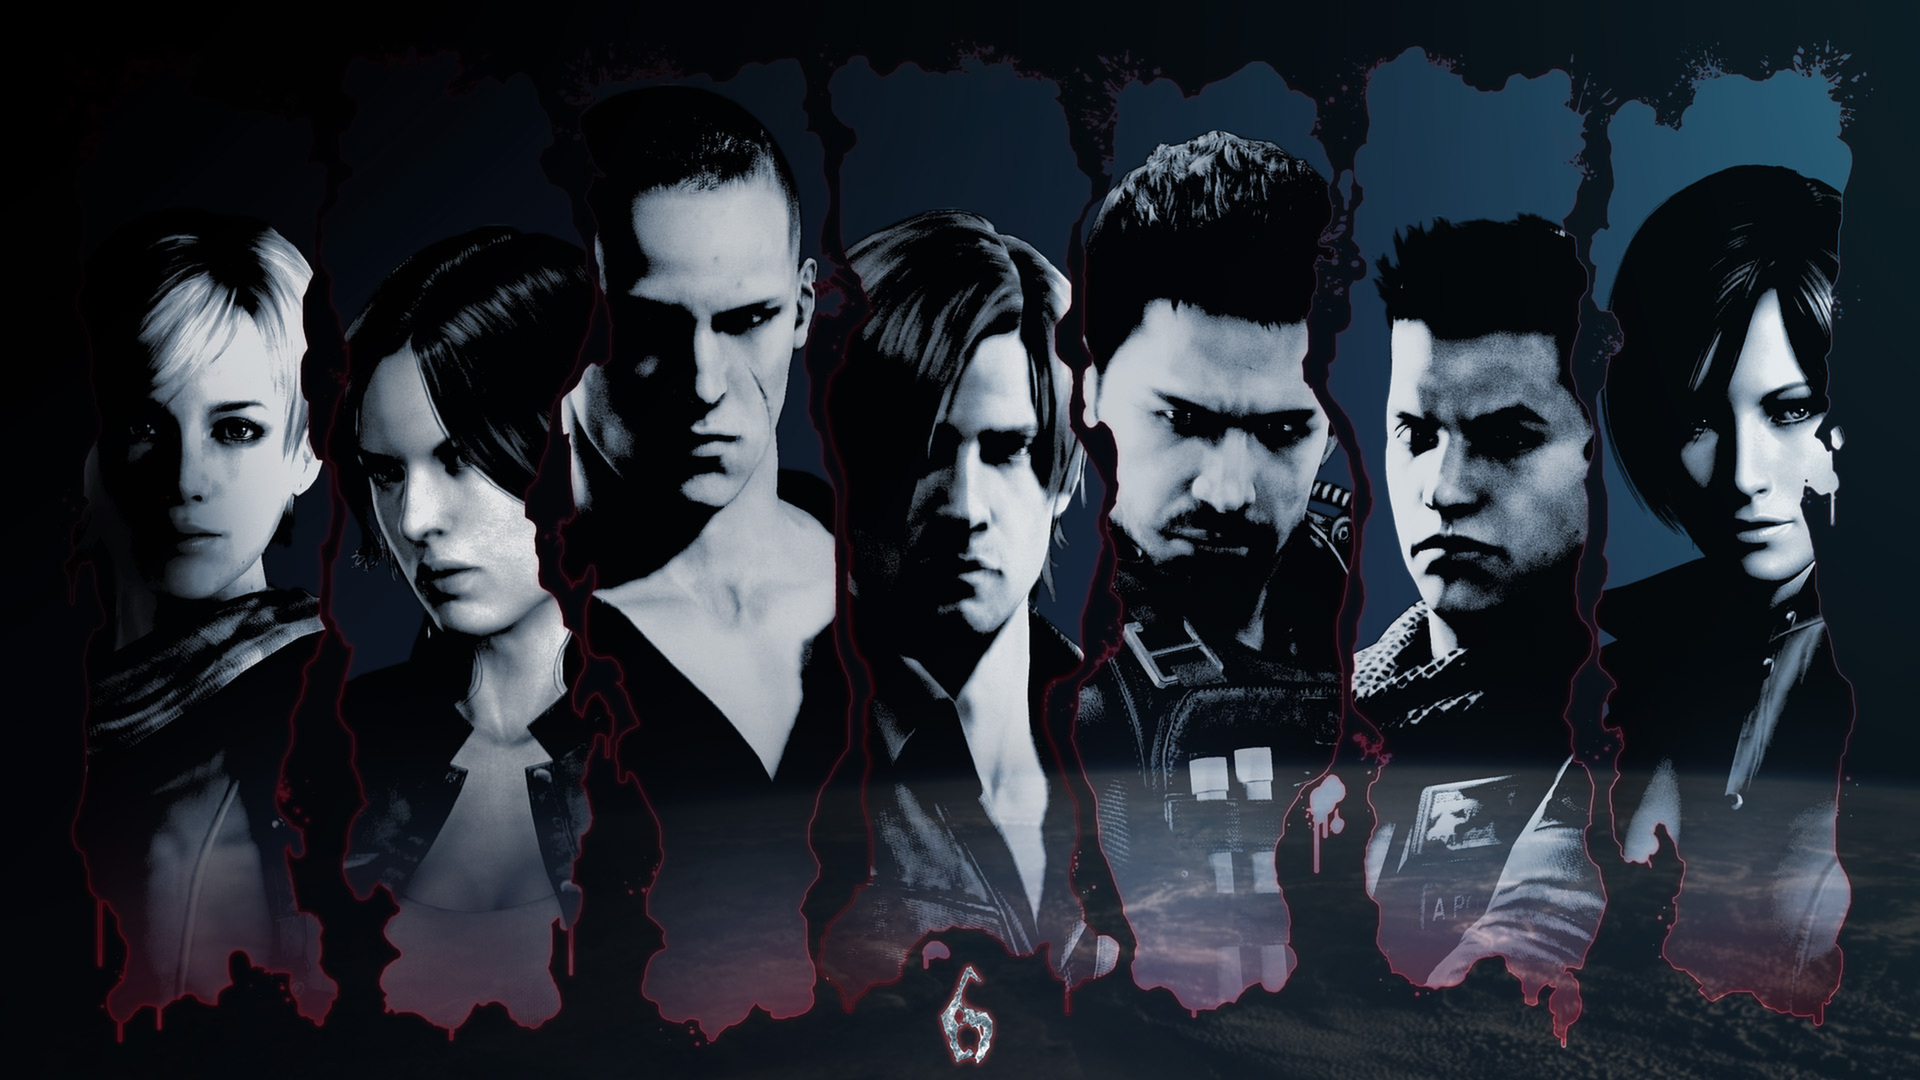 Resident Evil 6 Wallpaper On Steam